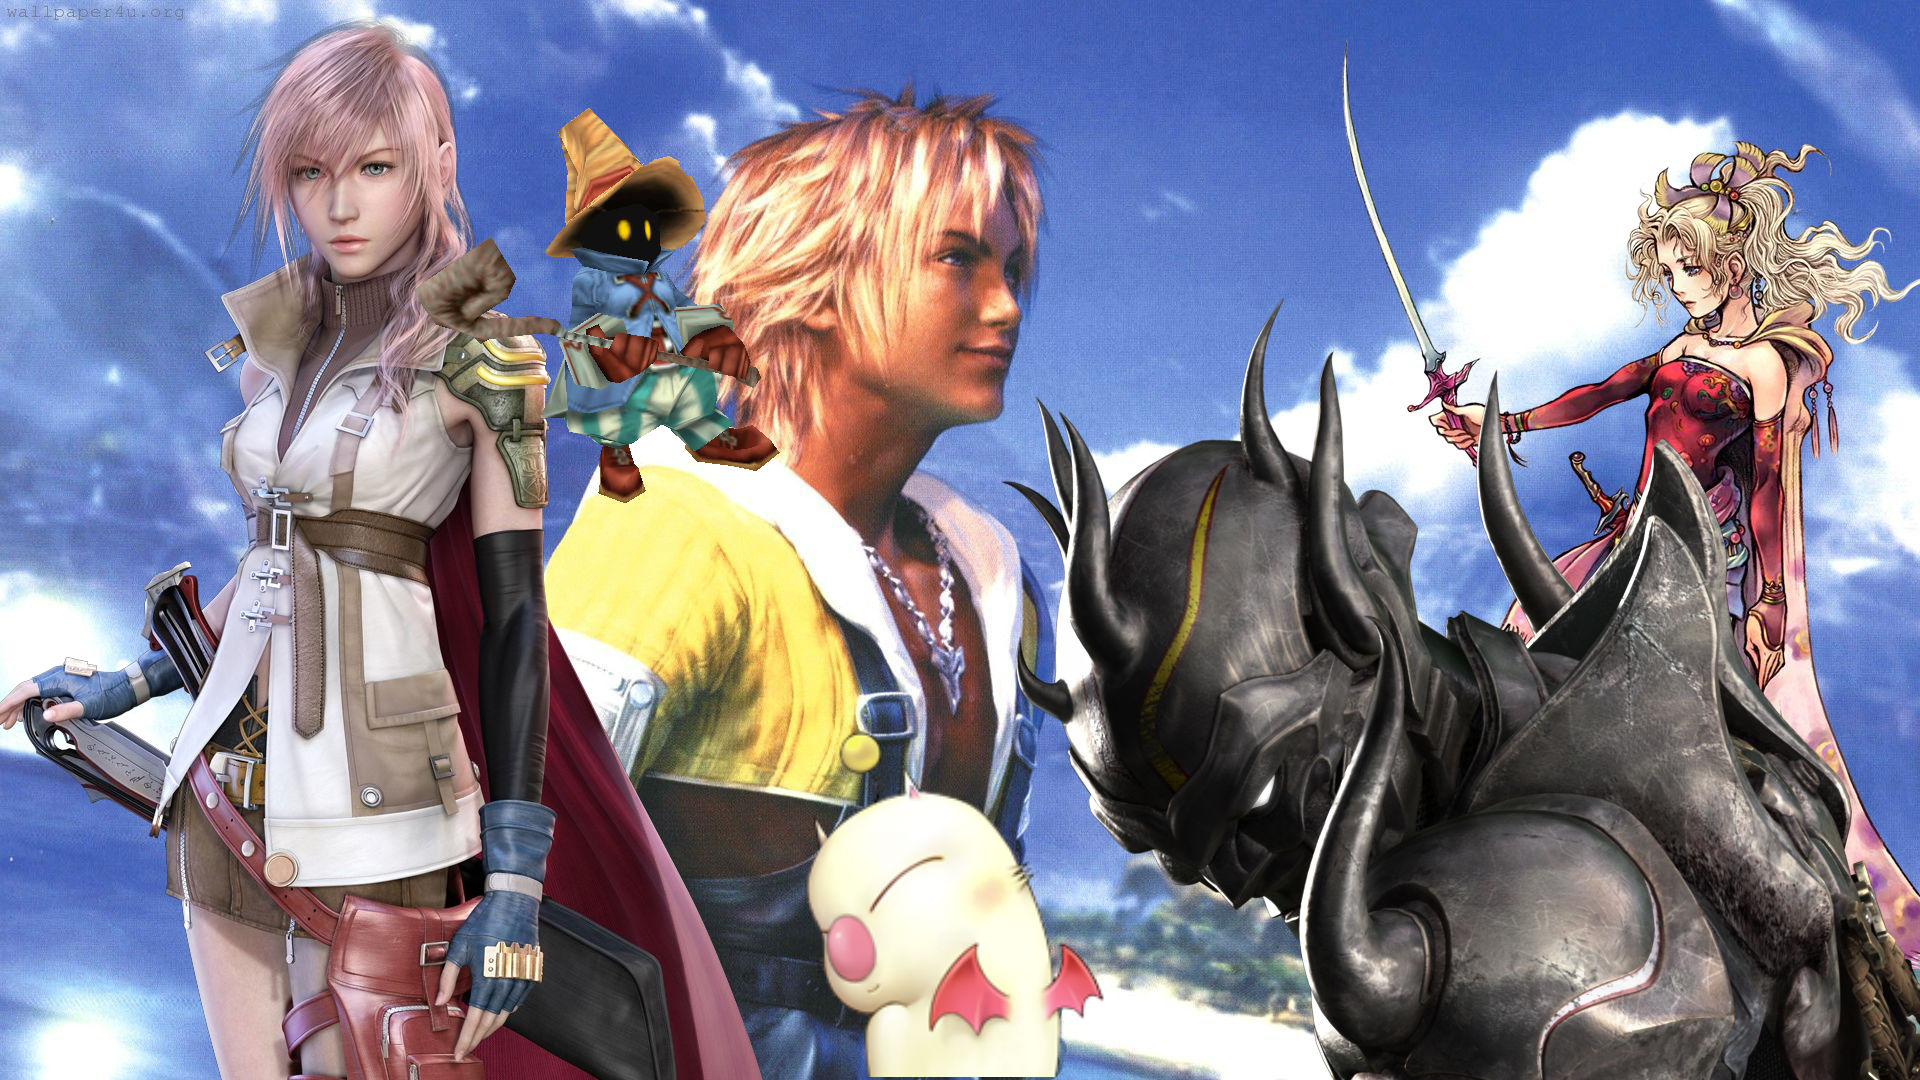 Final Fantasy X Sexy every final fantasy cover ranked from worst to best